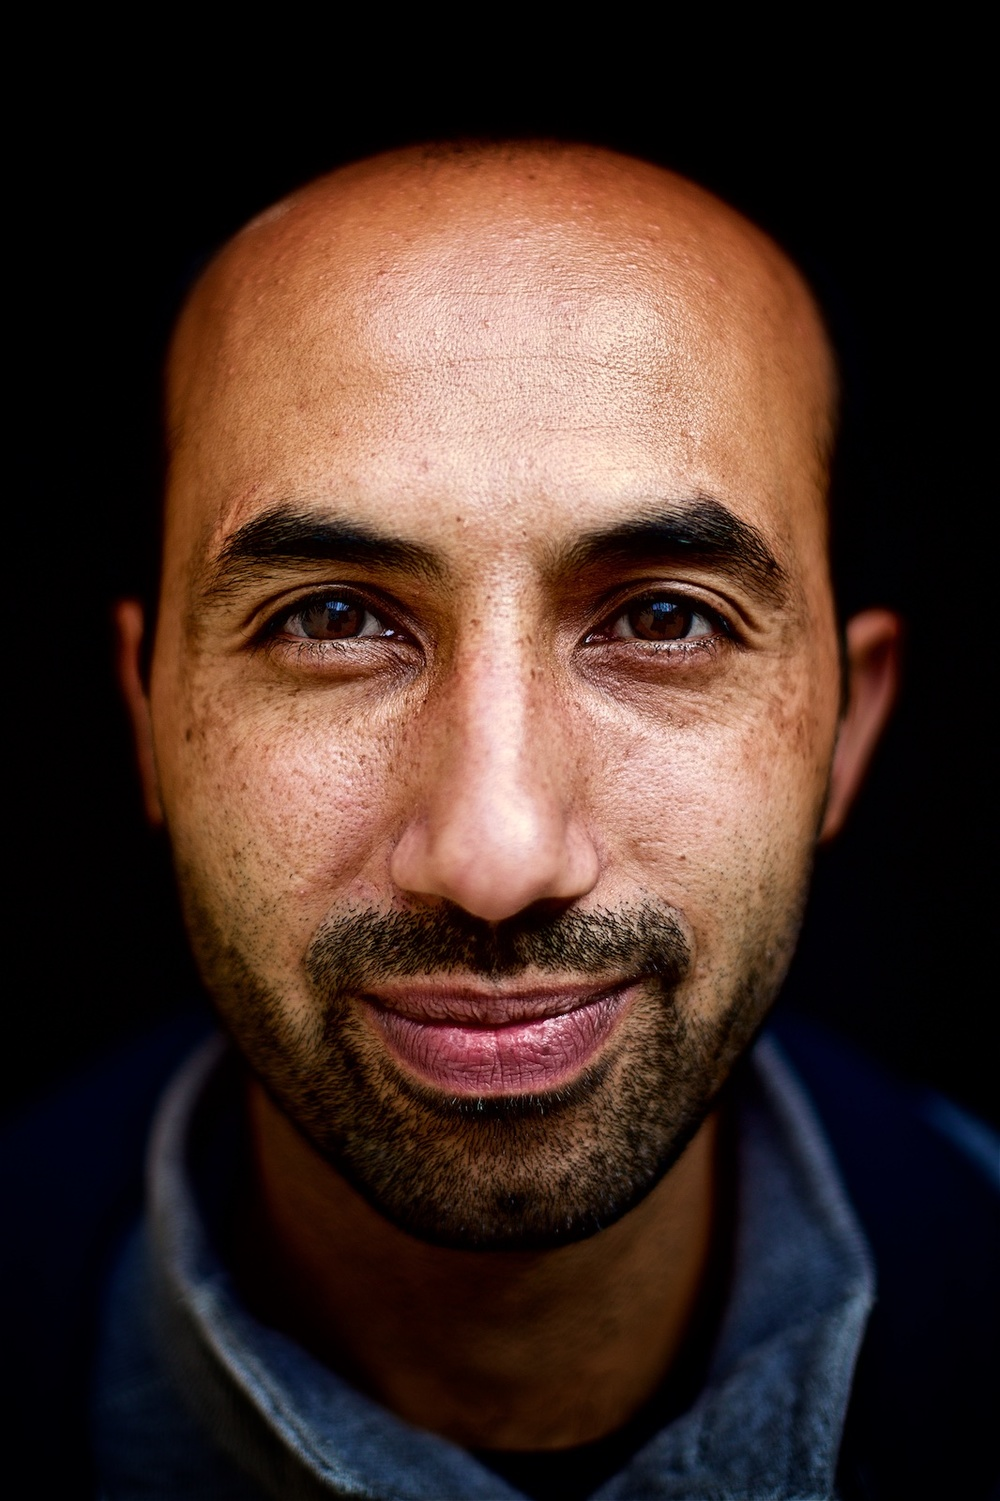 permanently-temporary-refugees-italy-rifugiati-italia-denis-bosnic-photography-portraits-1 (1).jpg